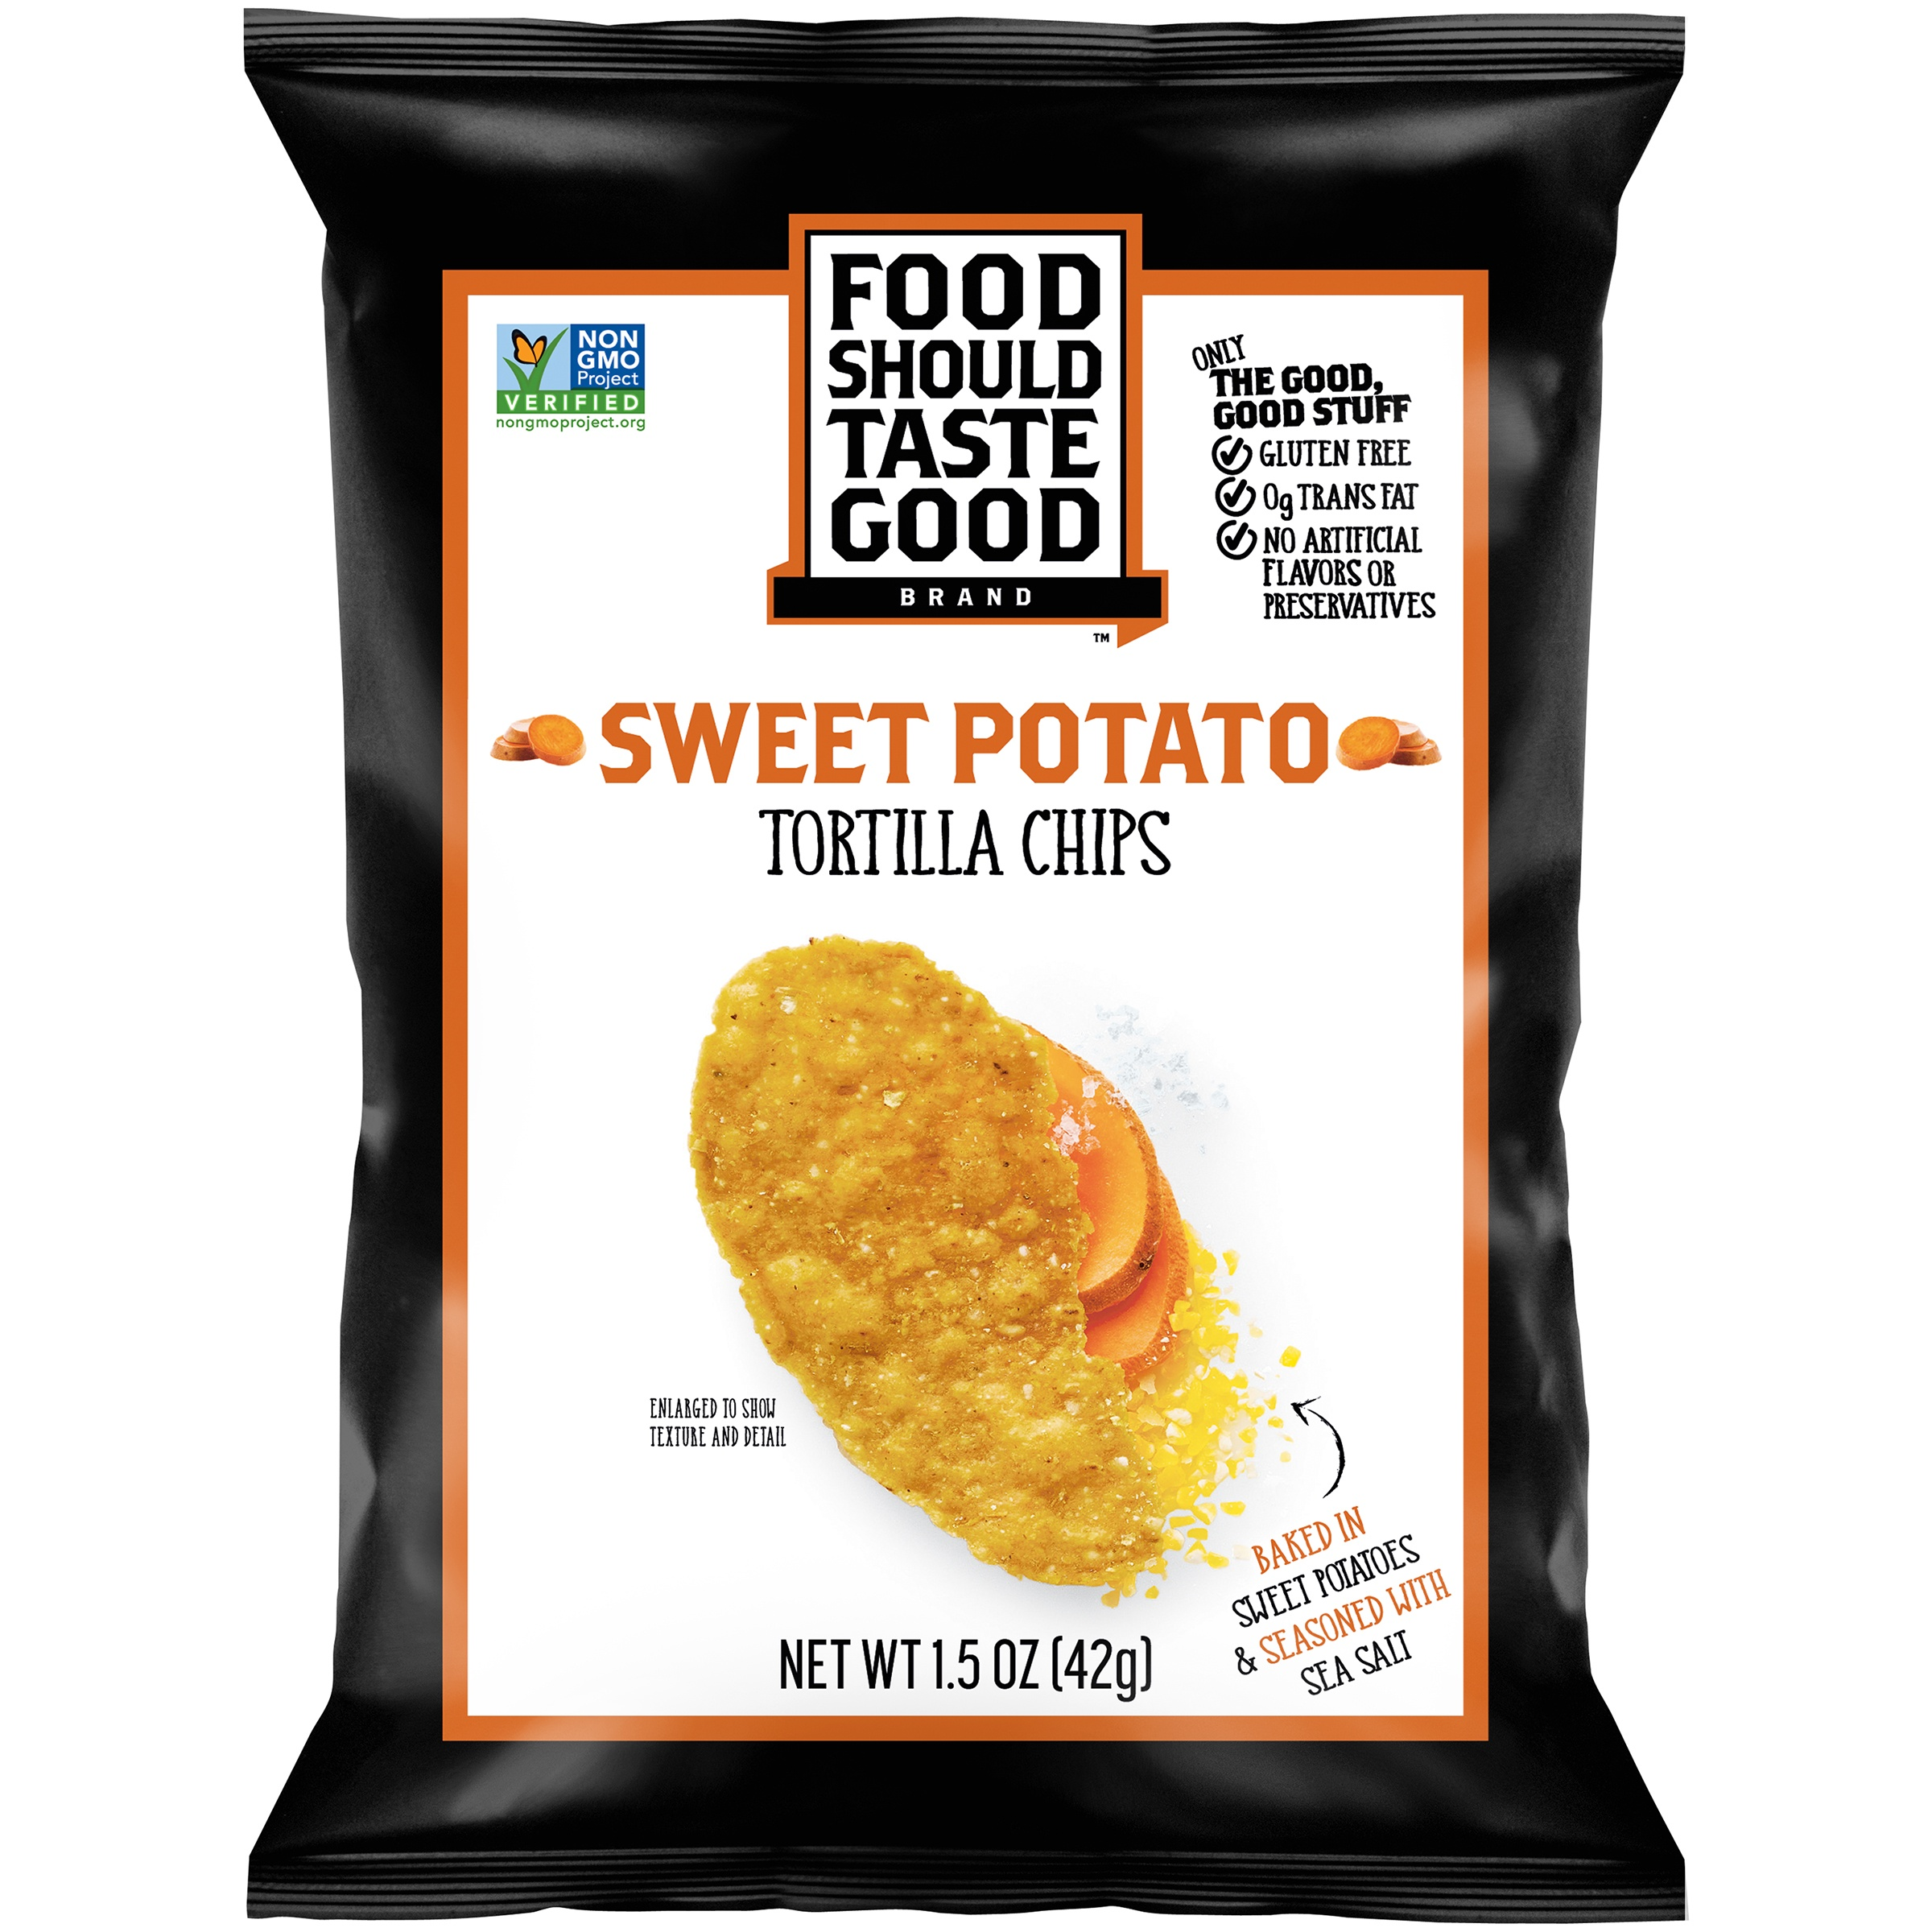 Food Should Taste Good™ Sweet Potato Tortilla Chips 1.5 oz. Bag